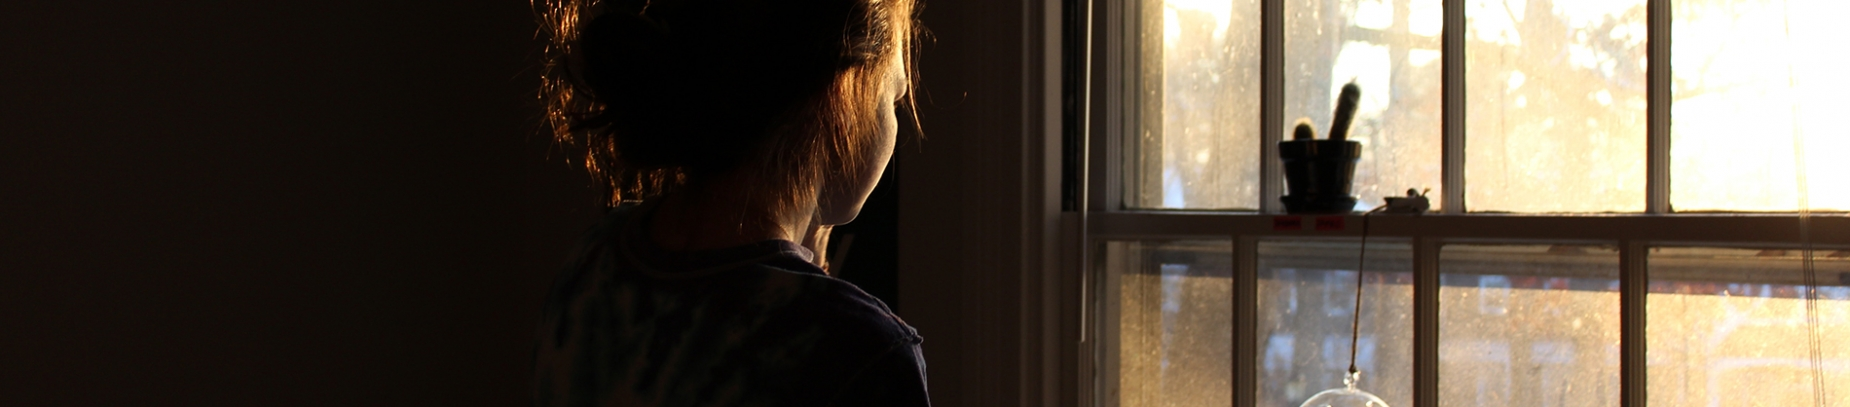 A women looking out of a window towards the light